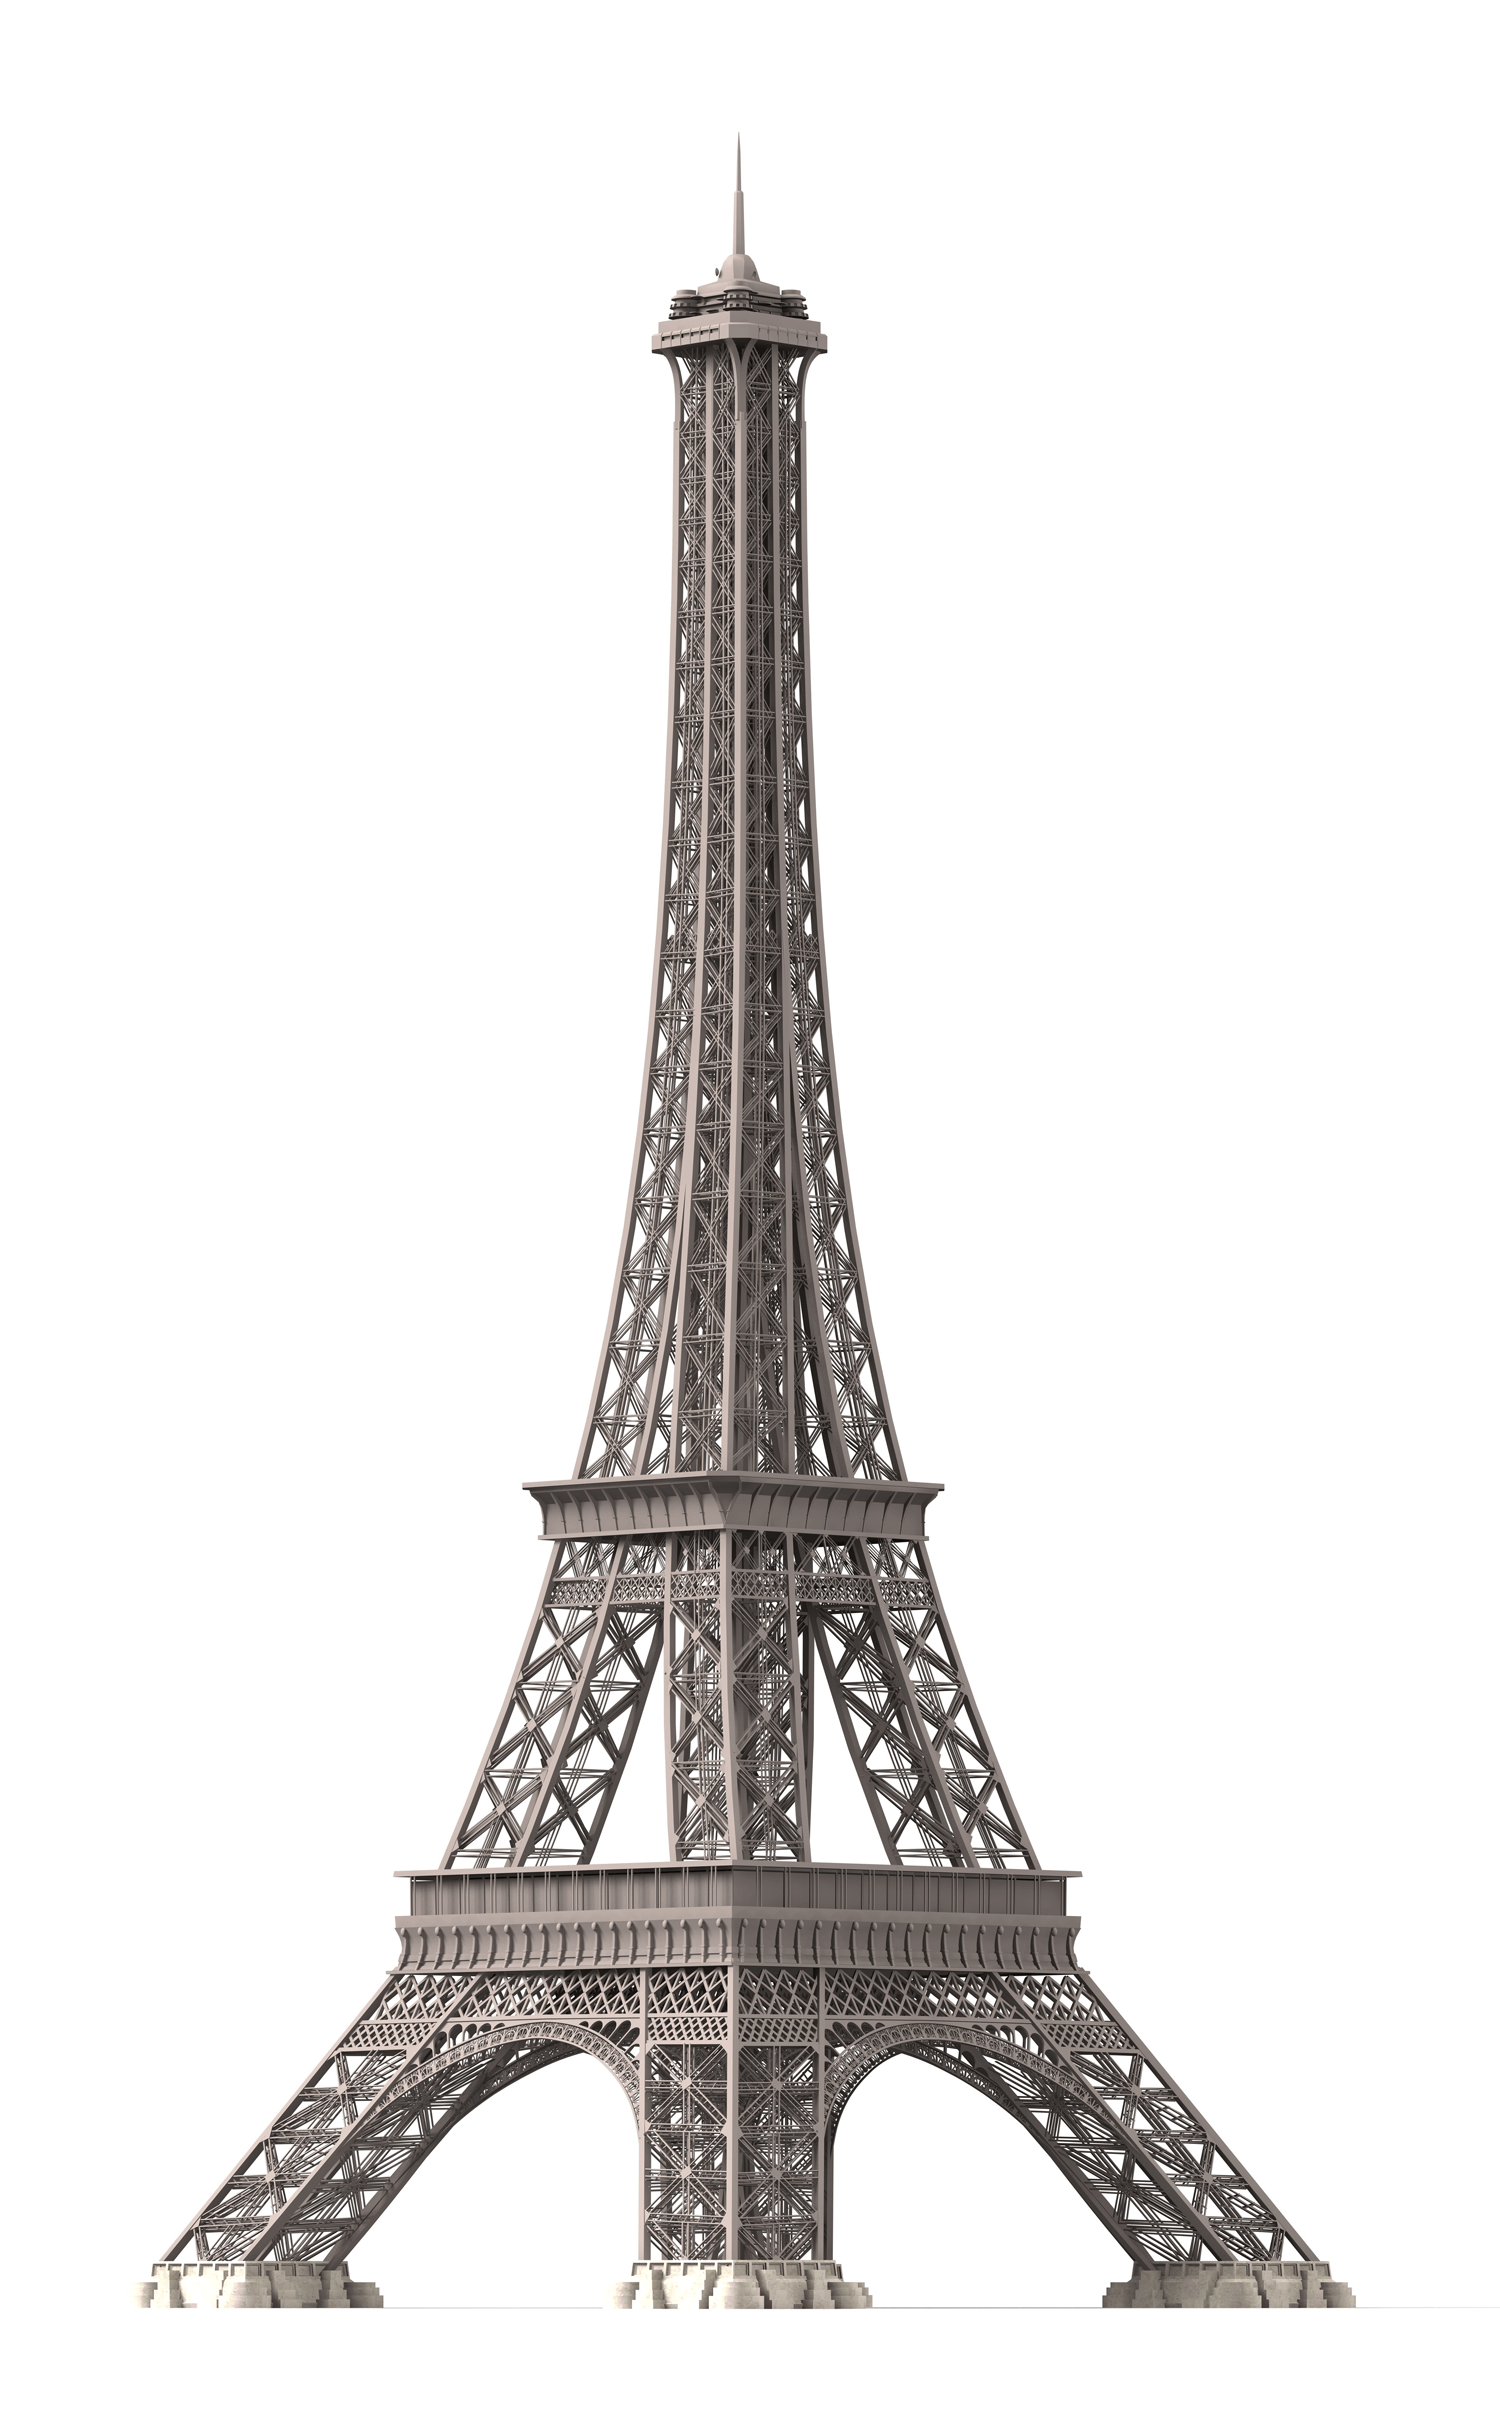 Eiffel Tower As A High Quality 3d Model For Free Download 3d Building Models Eiffel Tower Illustration Eiffel Tower Eiffel Tower Pictures